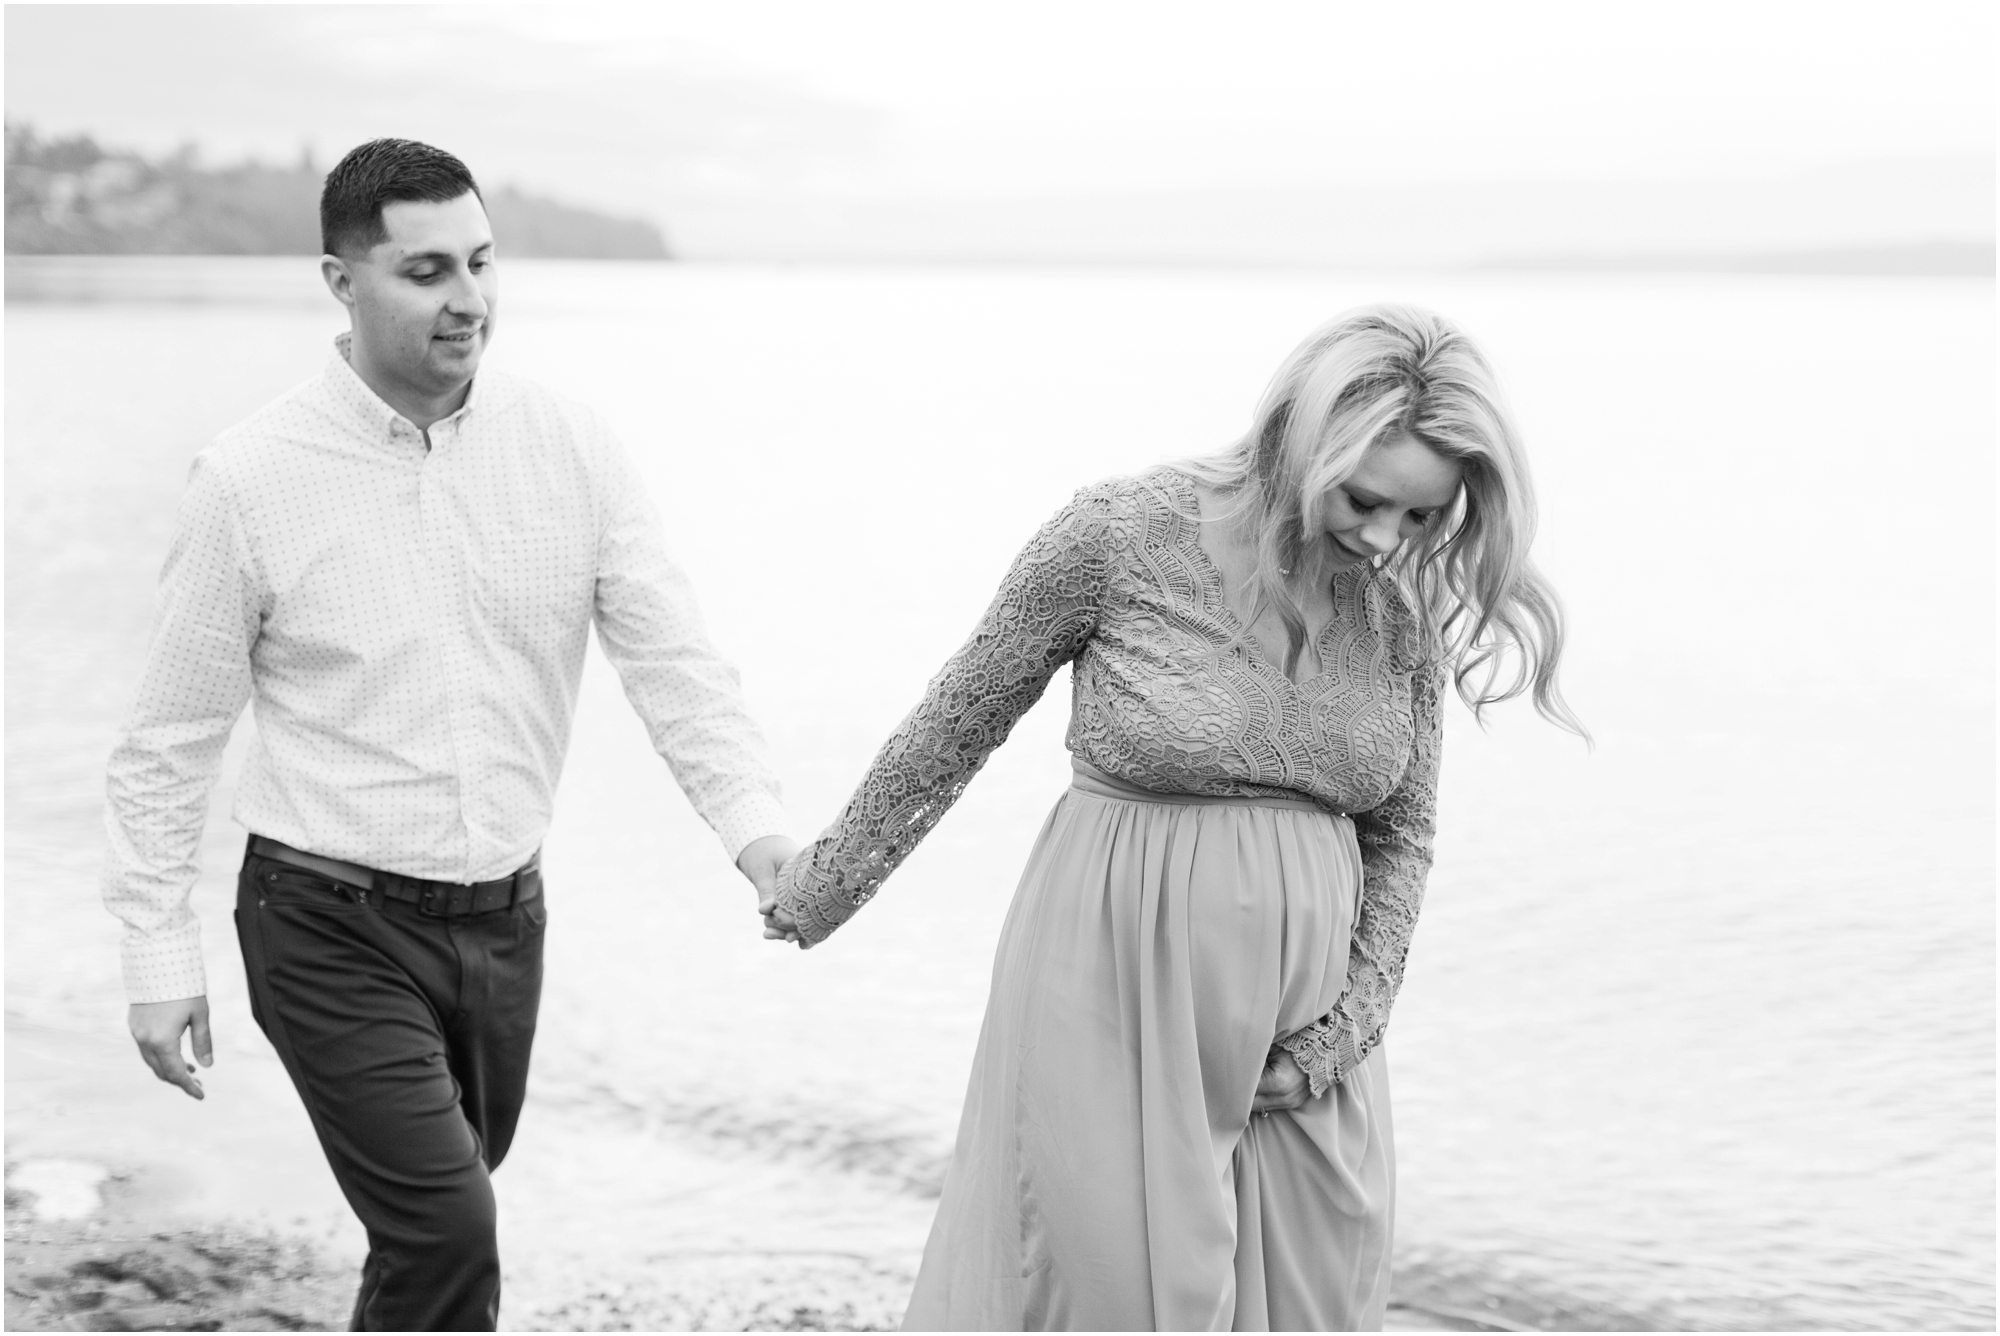 Maternity photos by Briana Calderon Photography based in the Greater Seattle & Tacoma, WA_0994.jpg